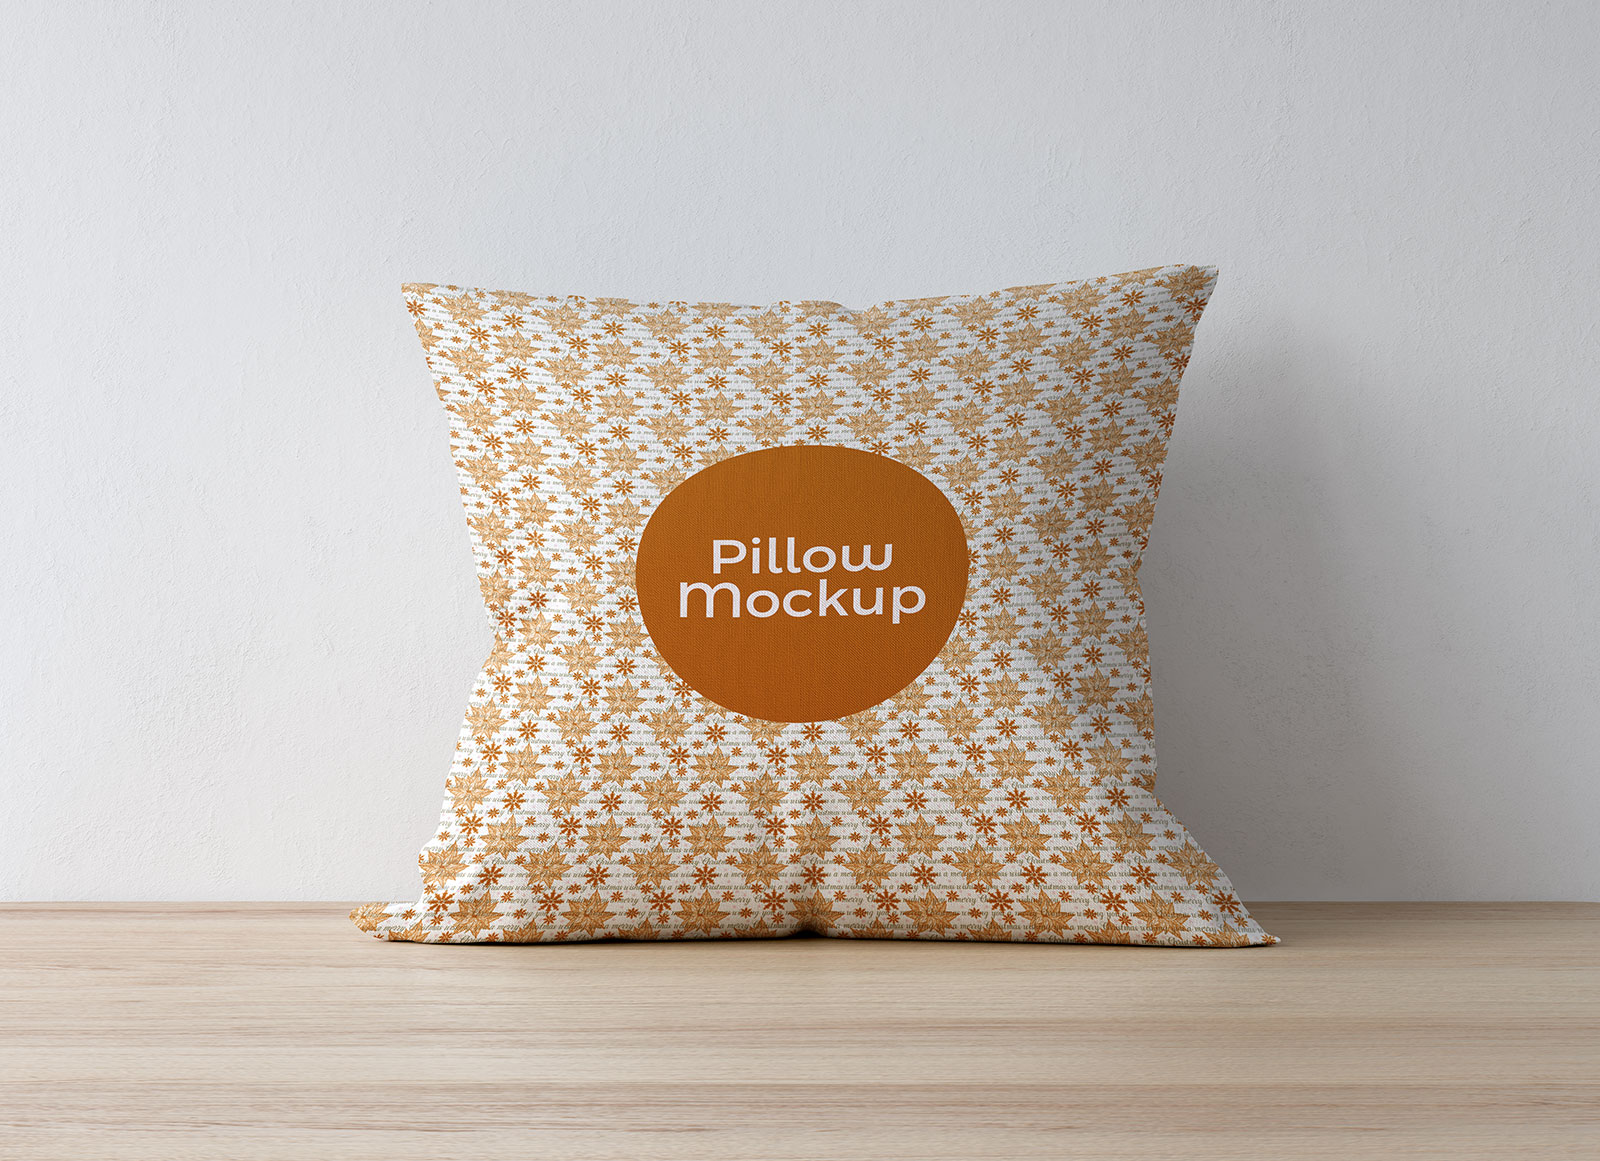 Free-Premium-Quality-Square-Pillow-Cushion-Mockup-PSD